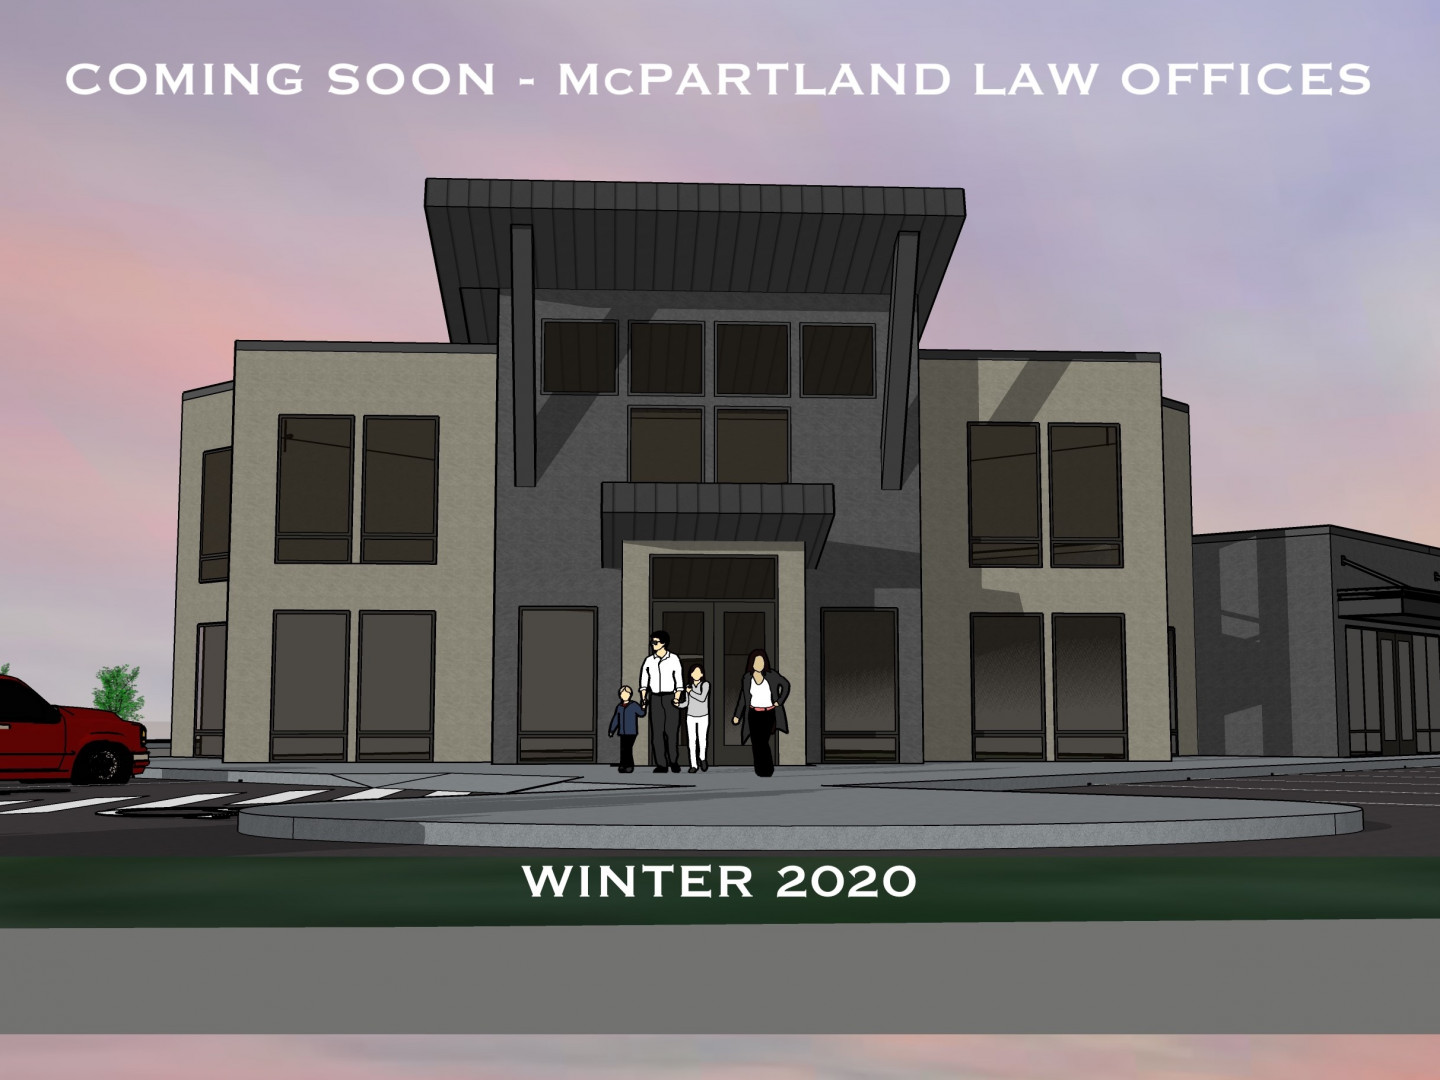 McPartland Law Offices New Location